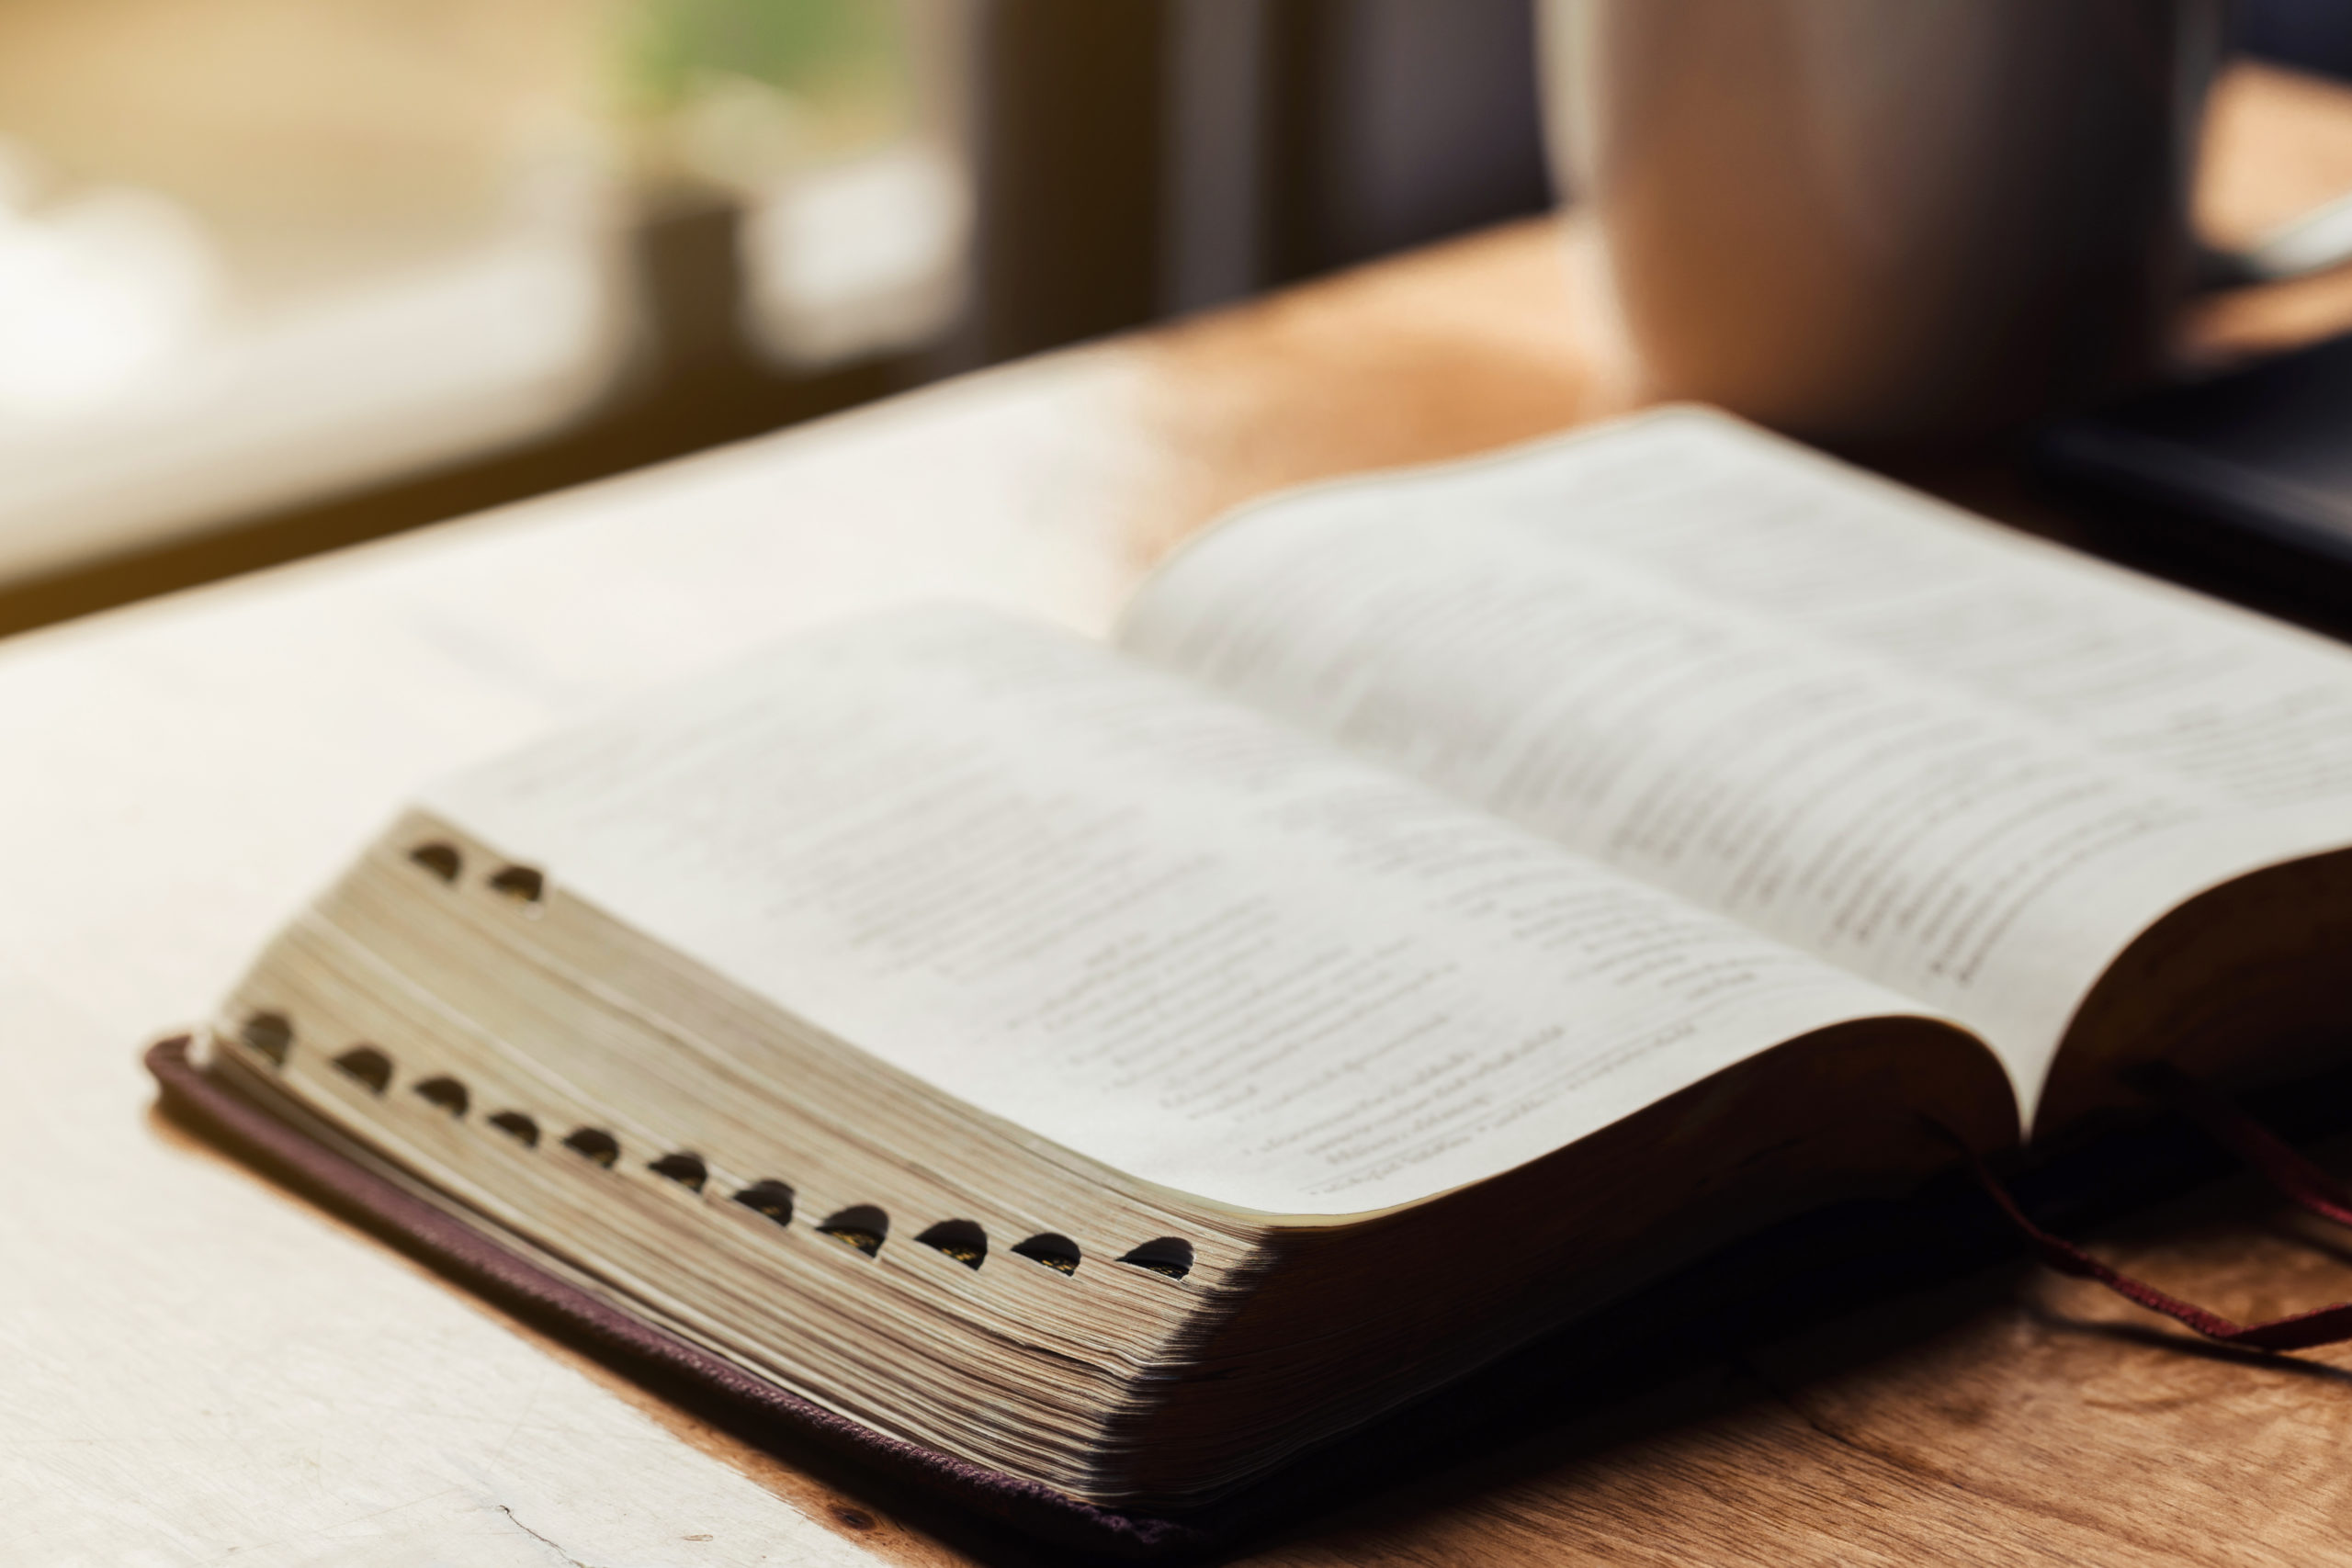 Open bible on wooden table